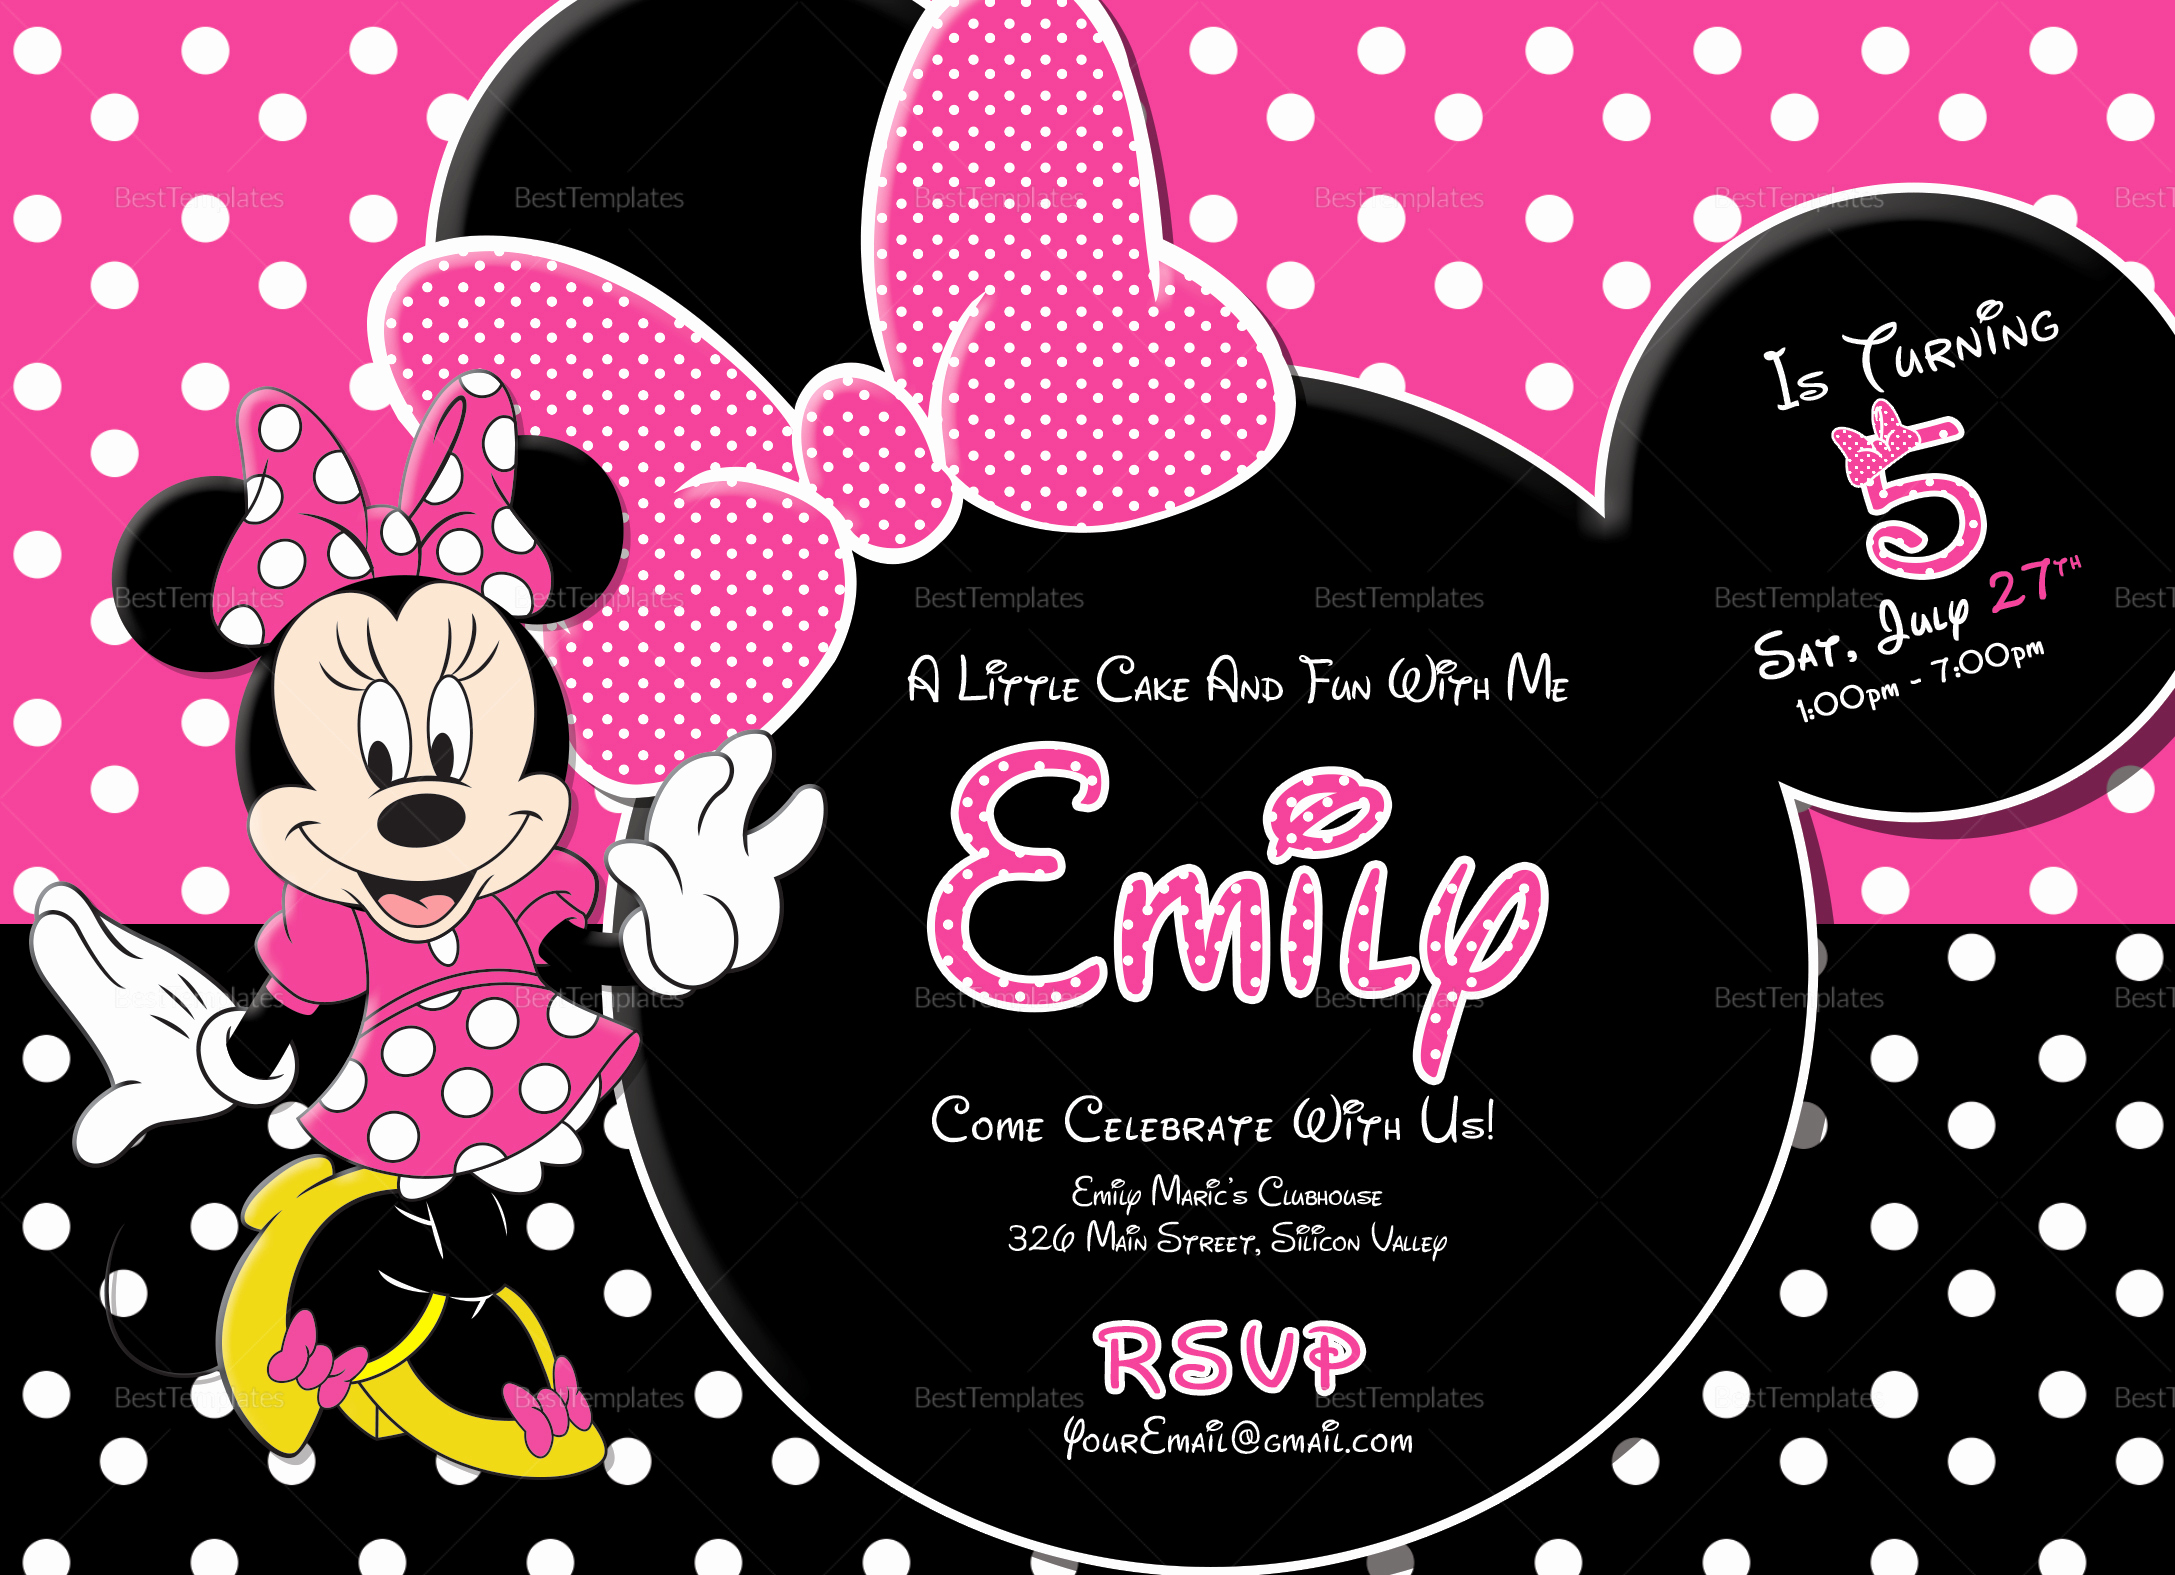 Minnie Mouse Invitation Template Unique Special Minnie Mouse Birthday Invitation Design Template